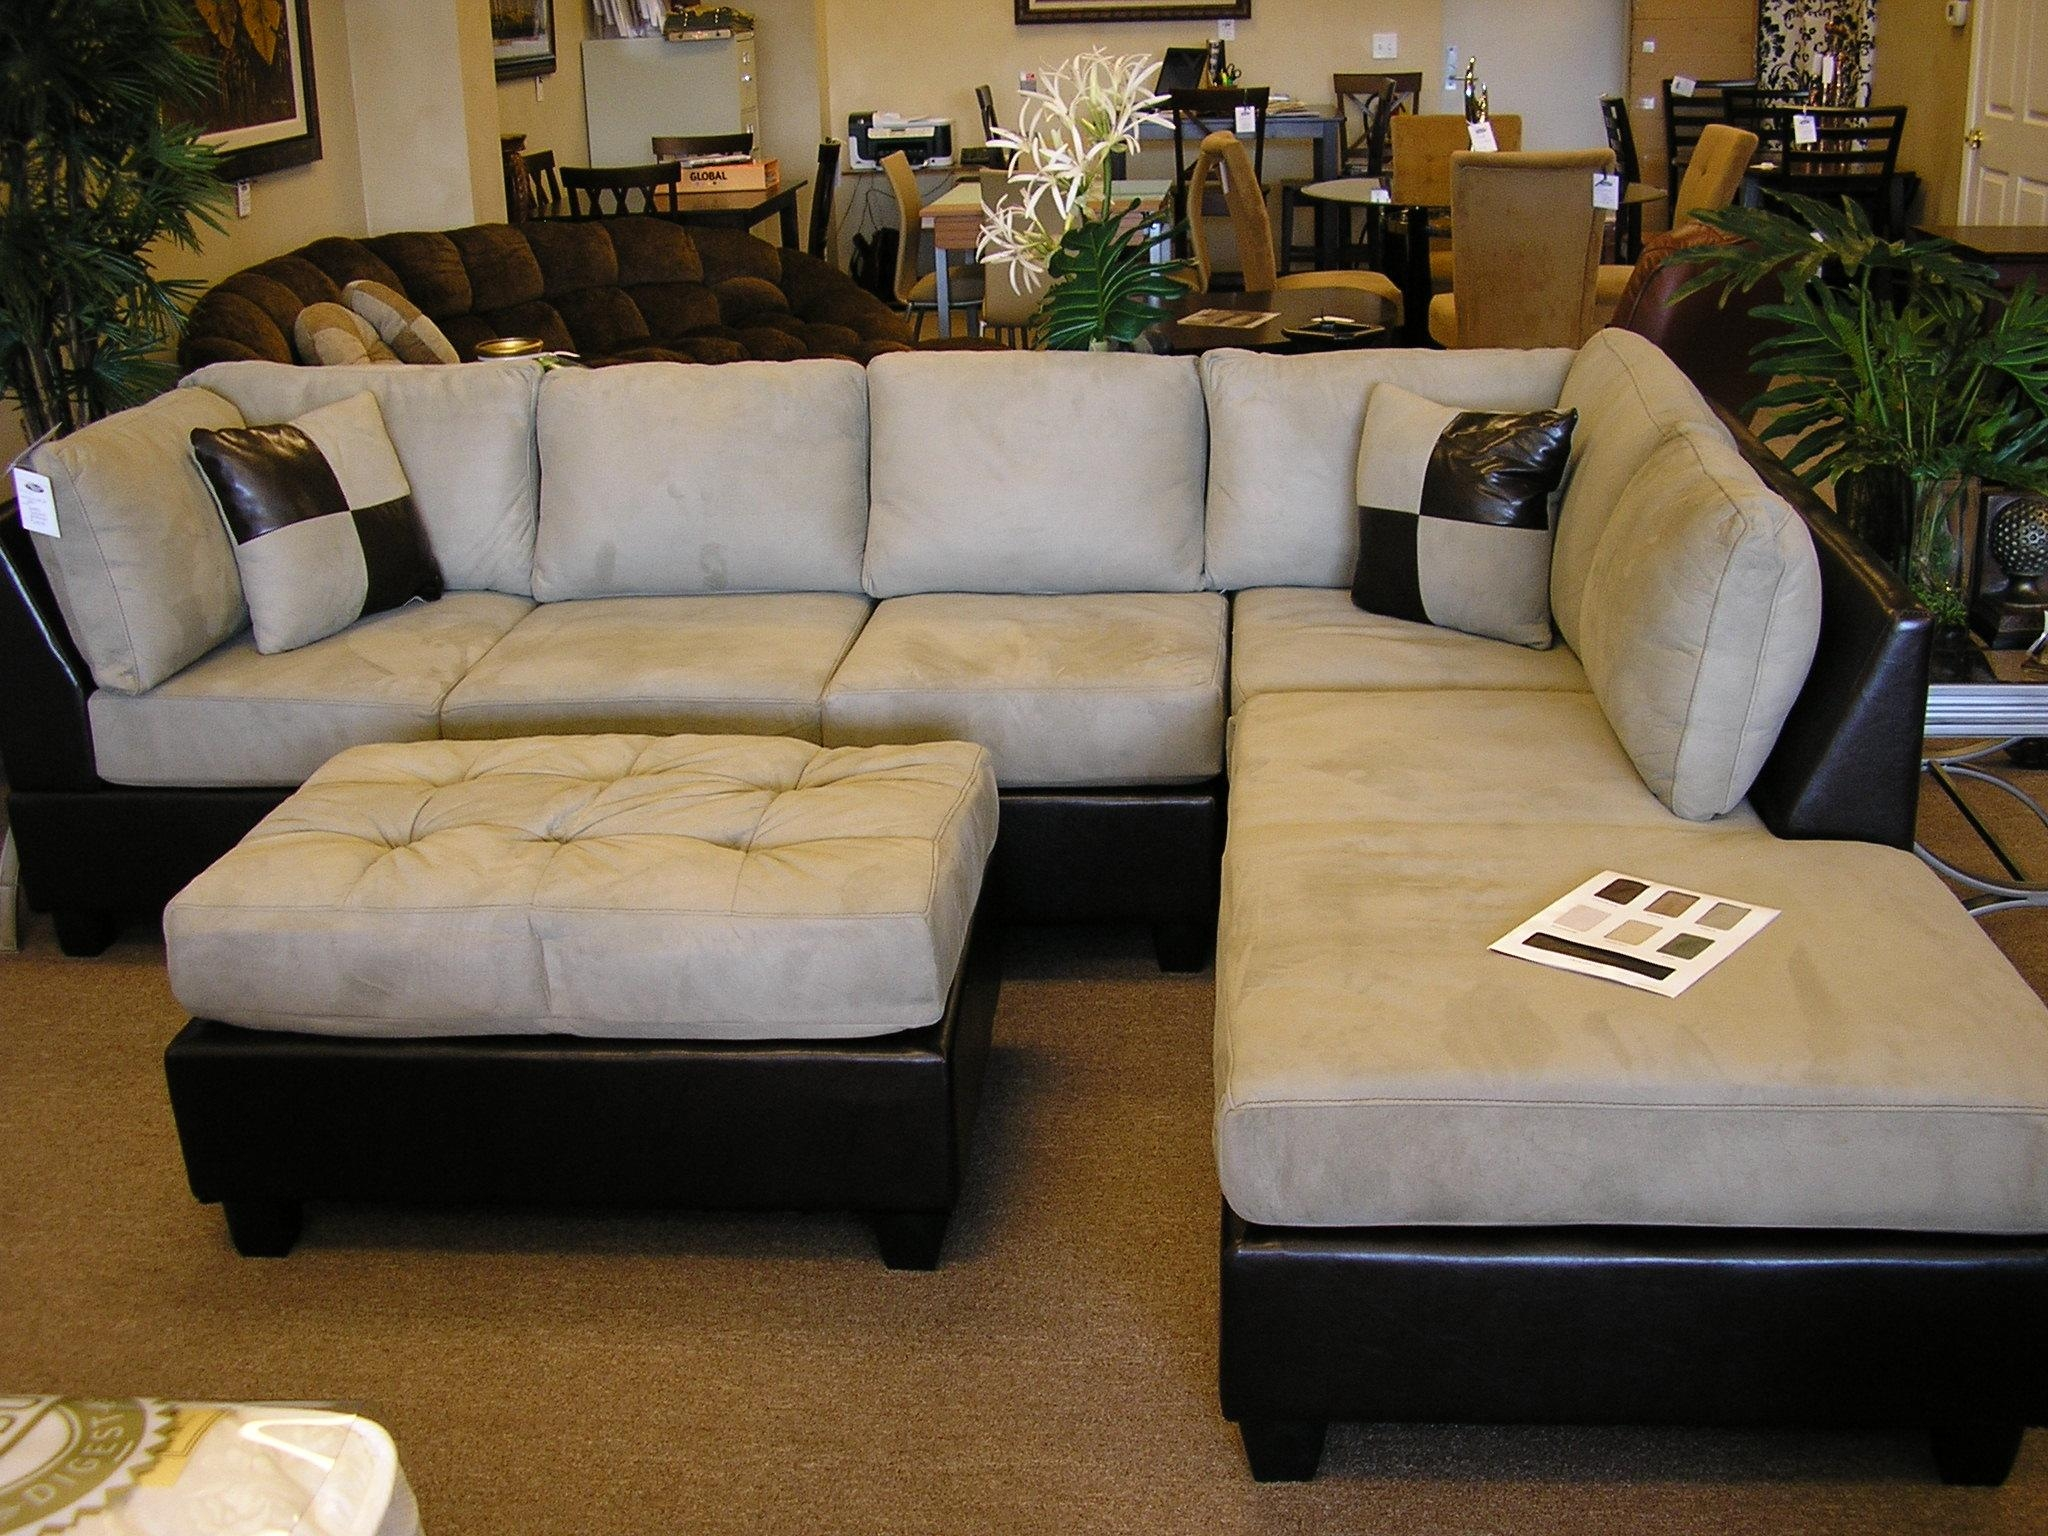 Furniture Sectional Sofas With Chaise Lounge Under 500 Cheap Pertaining To Sectional With Ottoman And Chaise (View 11 of 20)